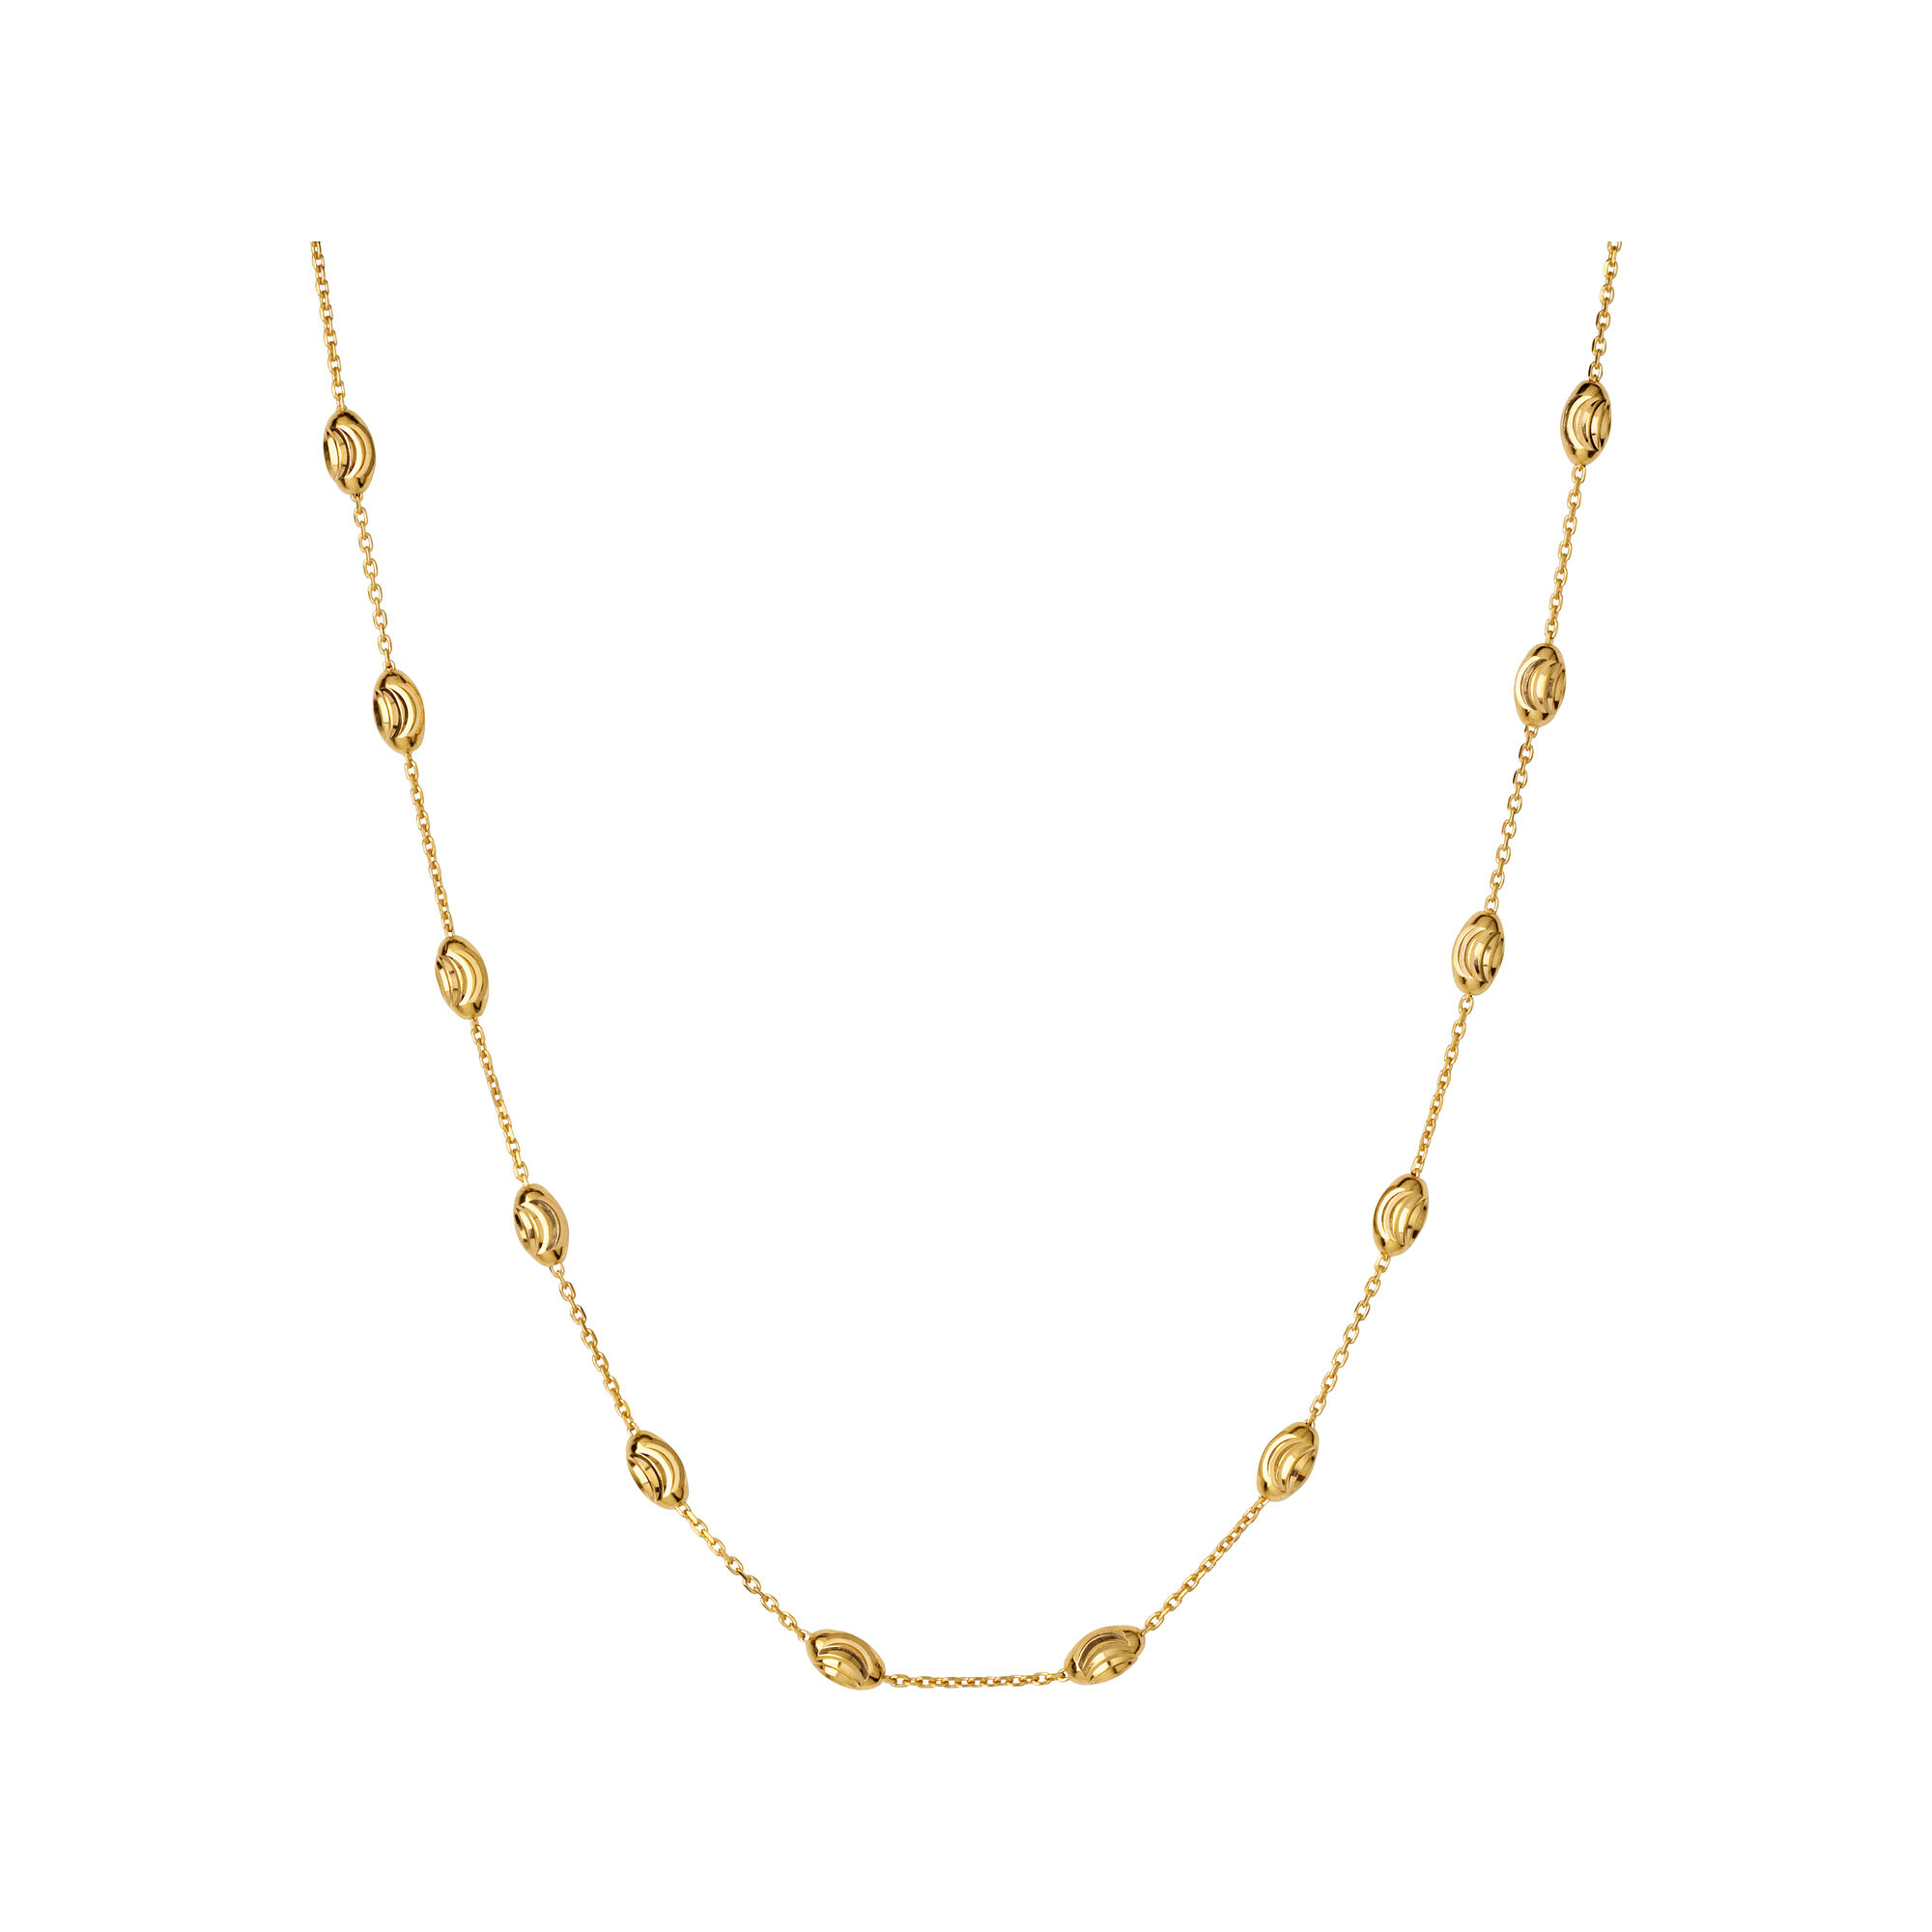 andaaaaaarpf chains for ladies malabar gold online necklace diamonds buy jewellery women ethnix